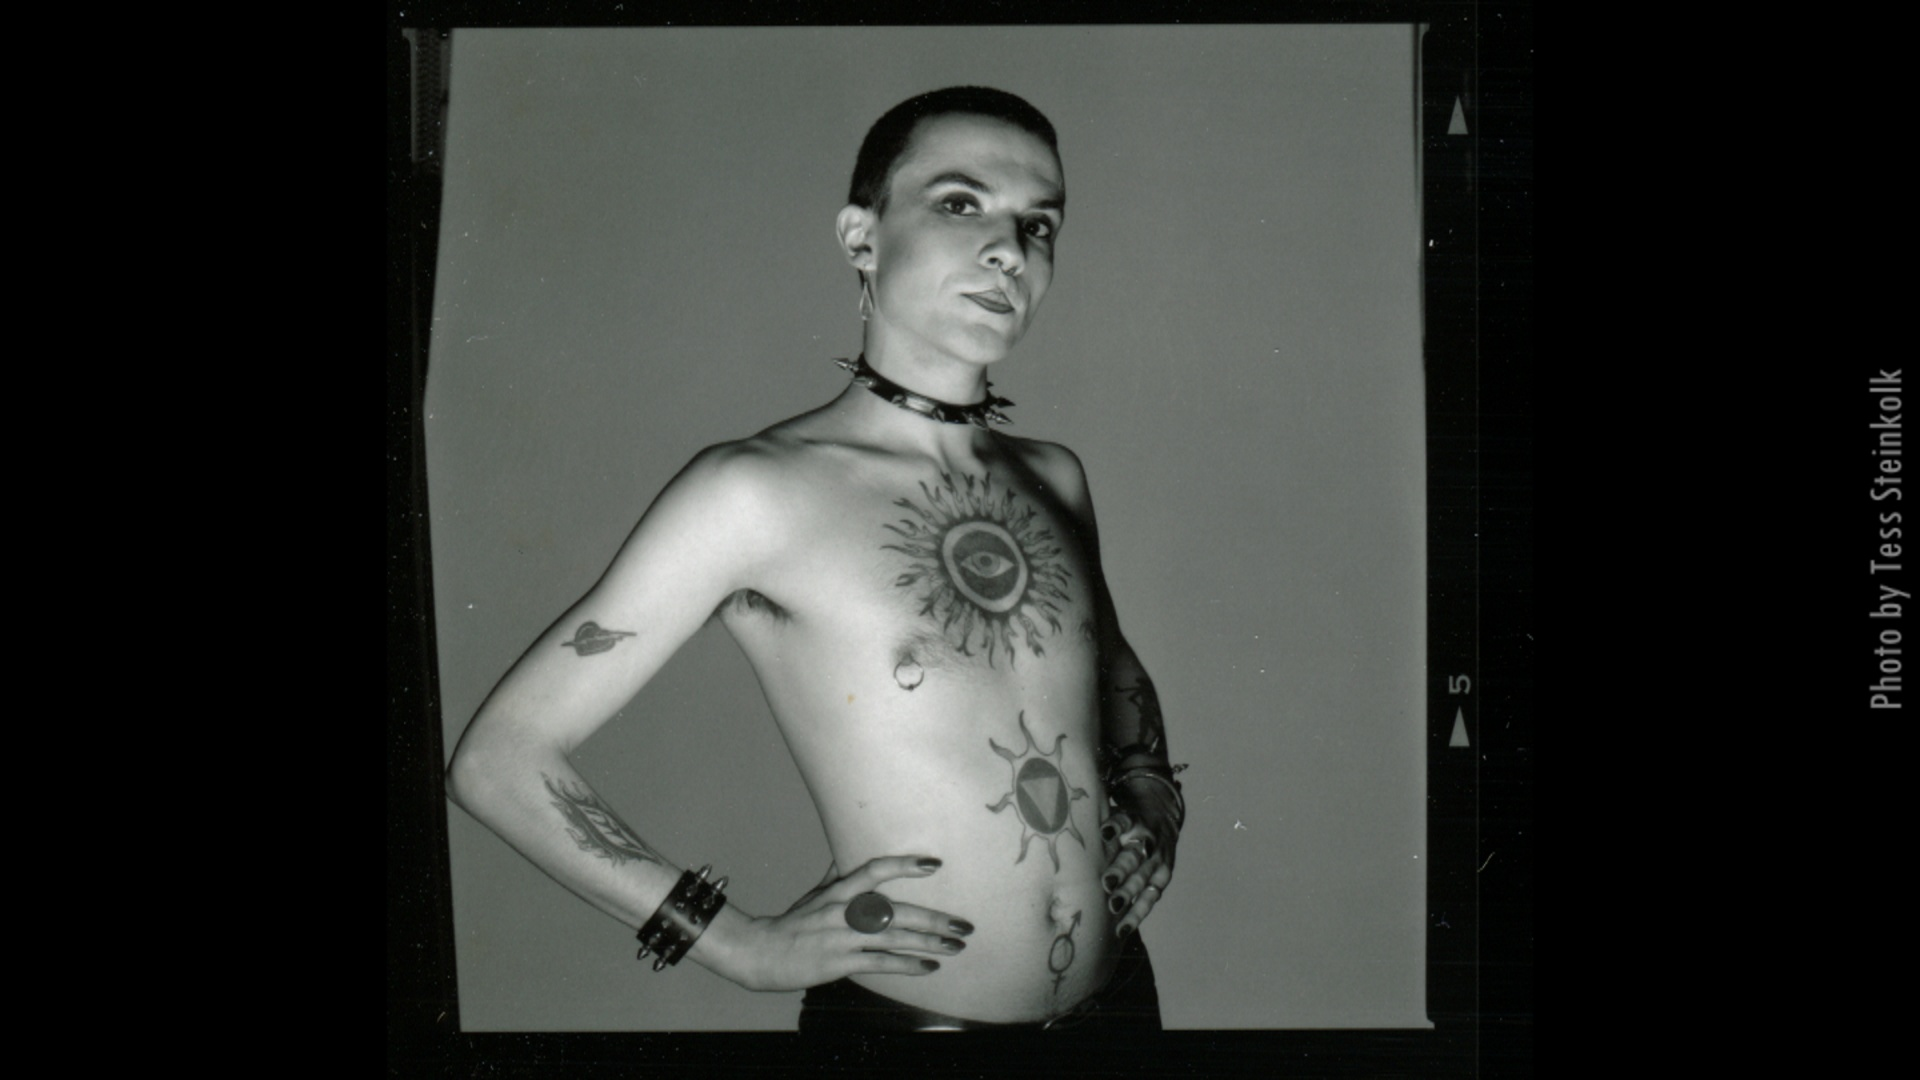 Rohan Quine - 'Those New York 'Nineties' - photo (184) by Tess Steinkolk